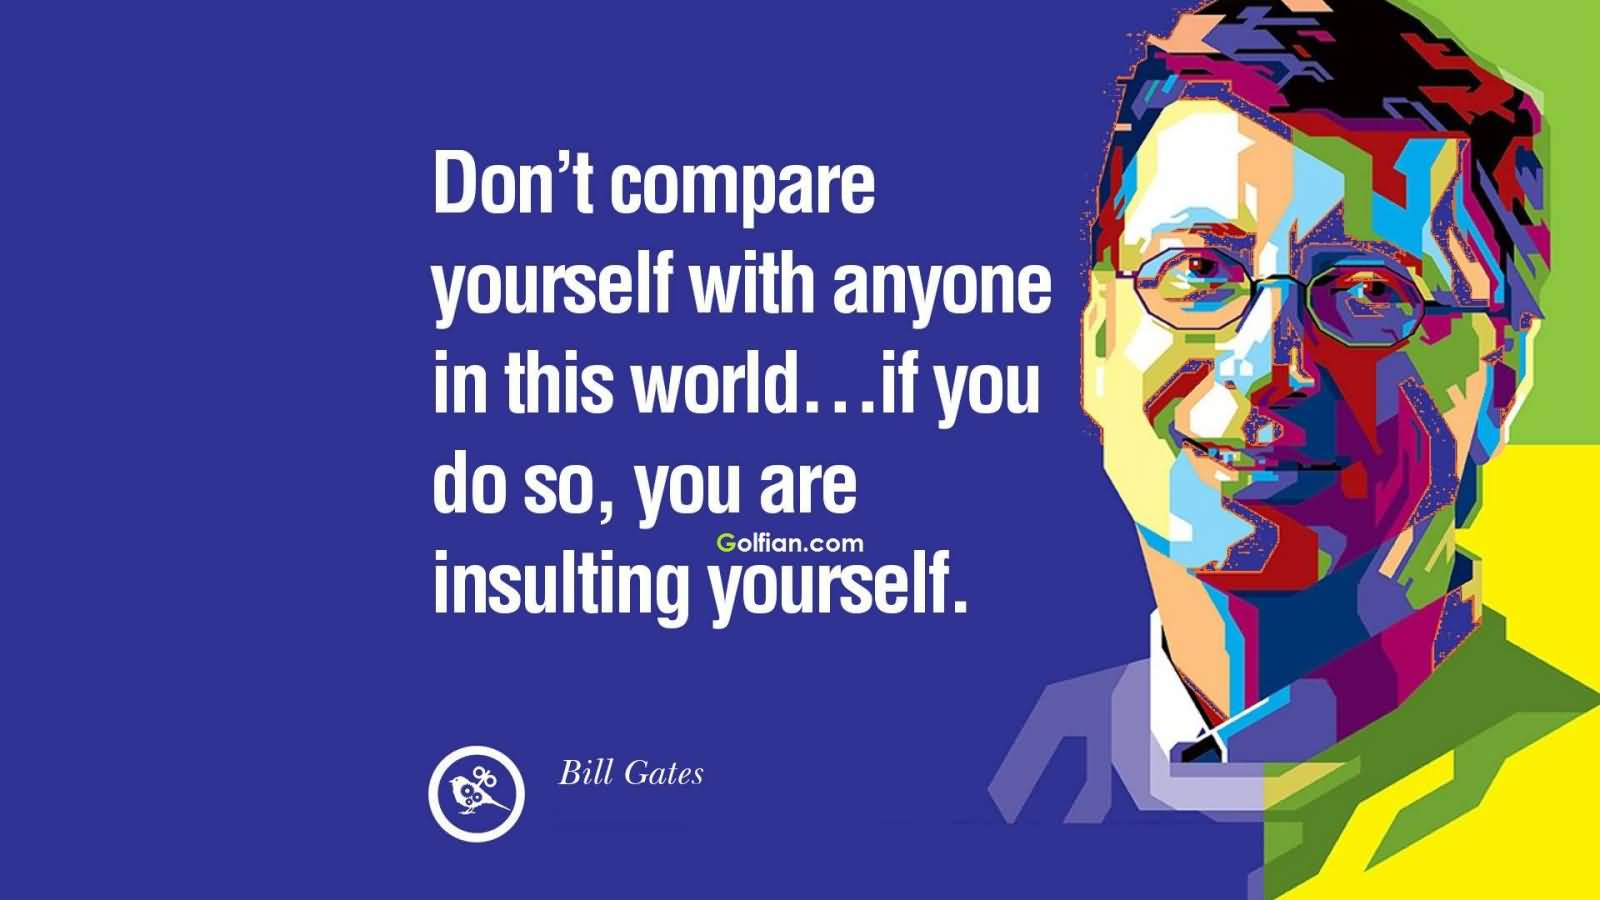 Don't compare yourself with anyone in this world…if you do so, you are insulting yourself - Bill Gates